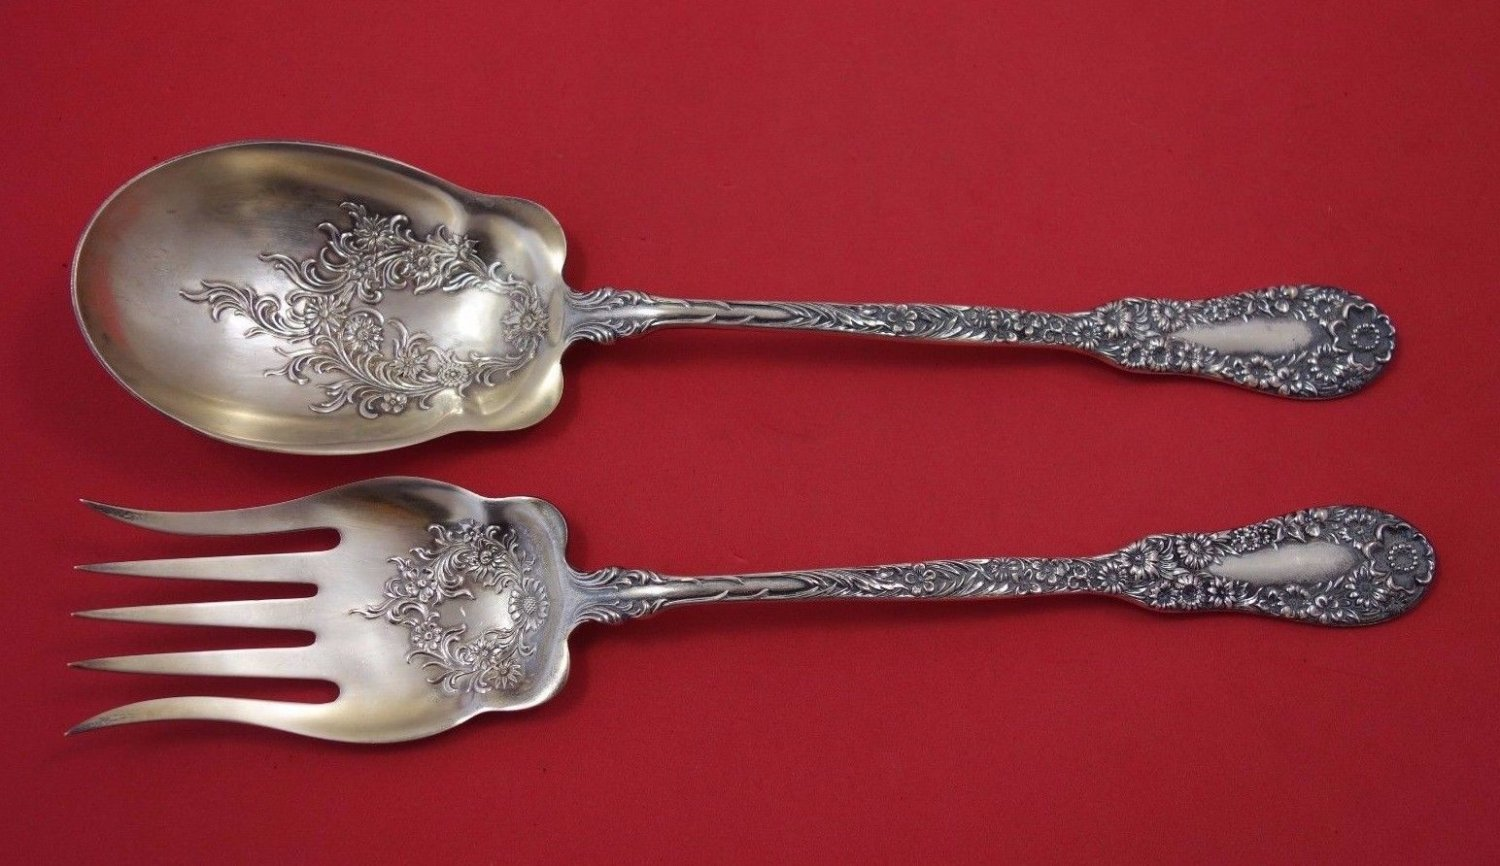 Number 10 by Dominick & Haff Sterling Silver Salad Serving Set 2pc GW w/ Flowers